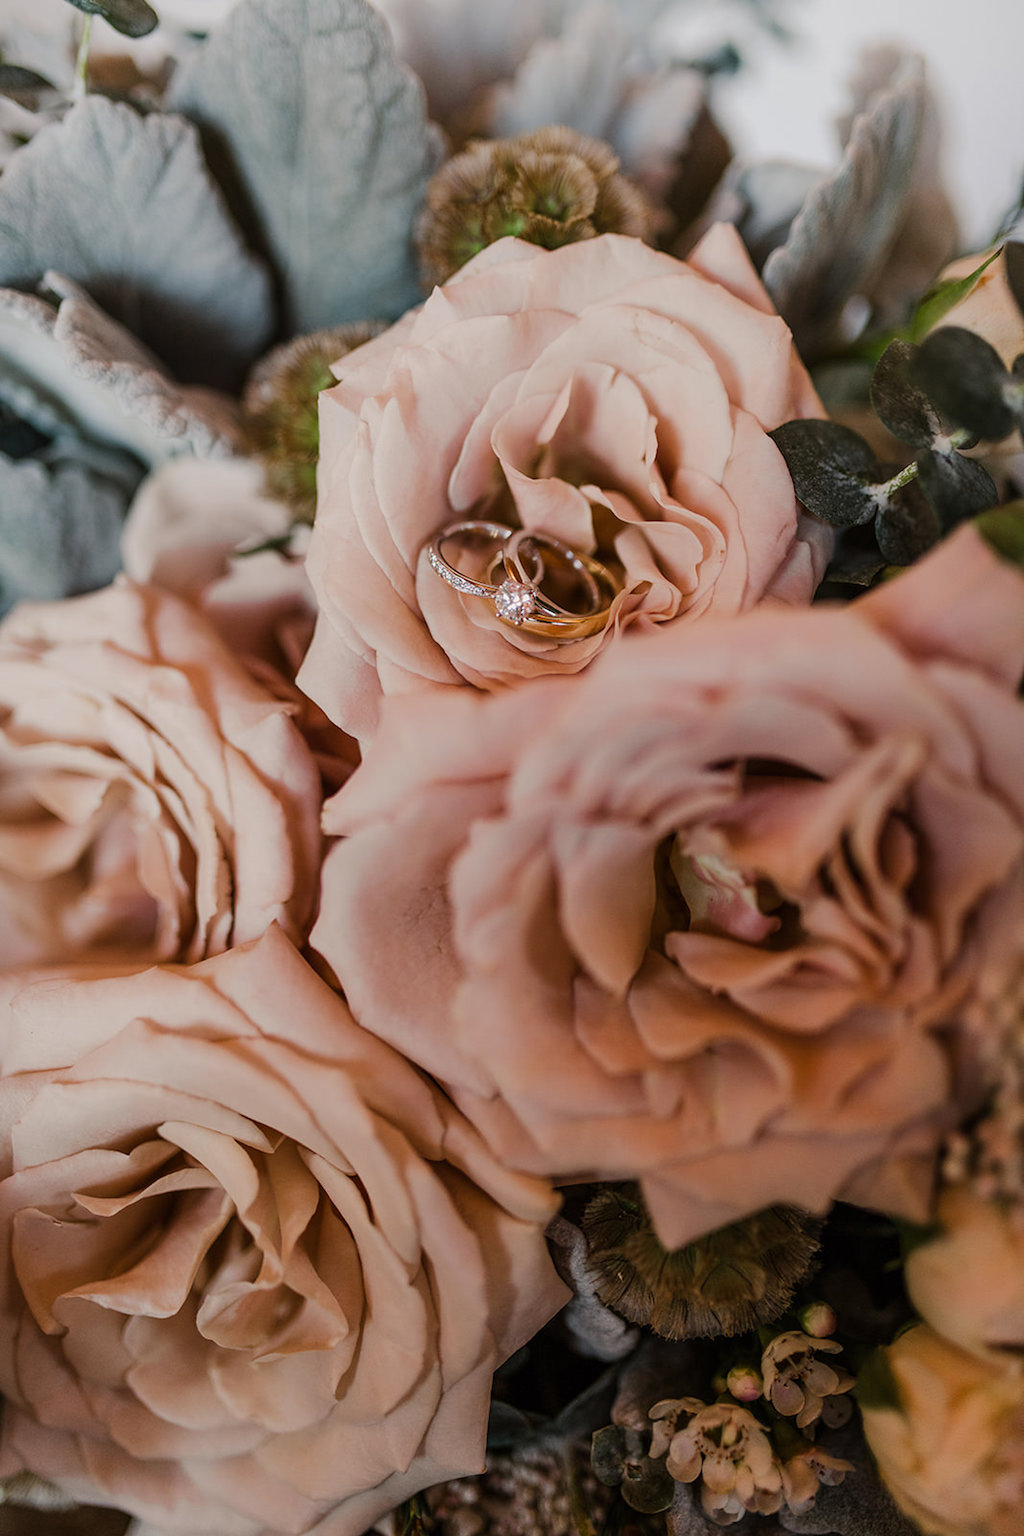 Diamond Engagement Ring and Wedding Bands on Peach Roses